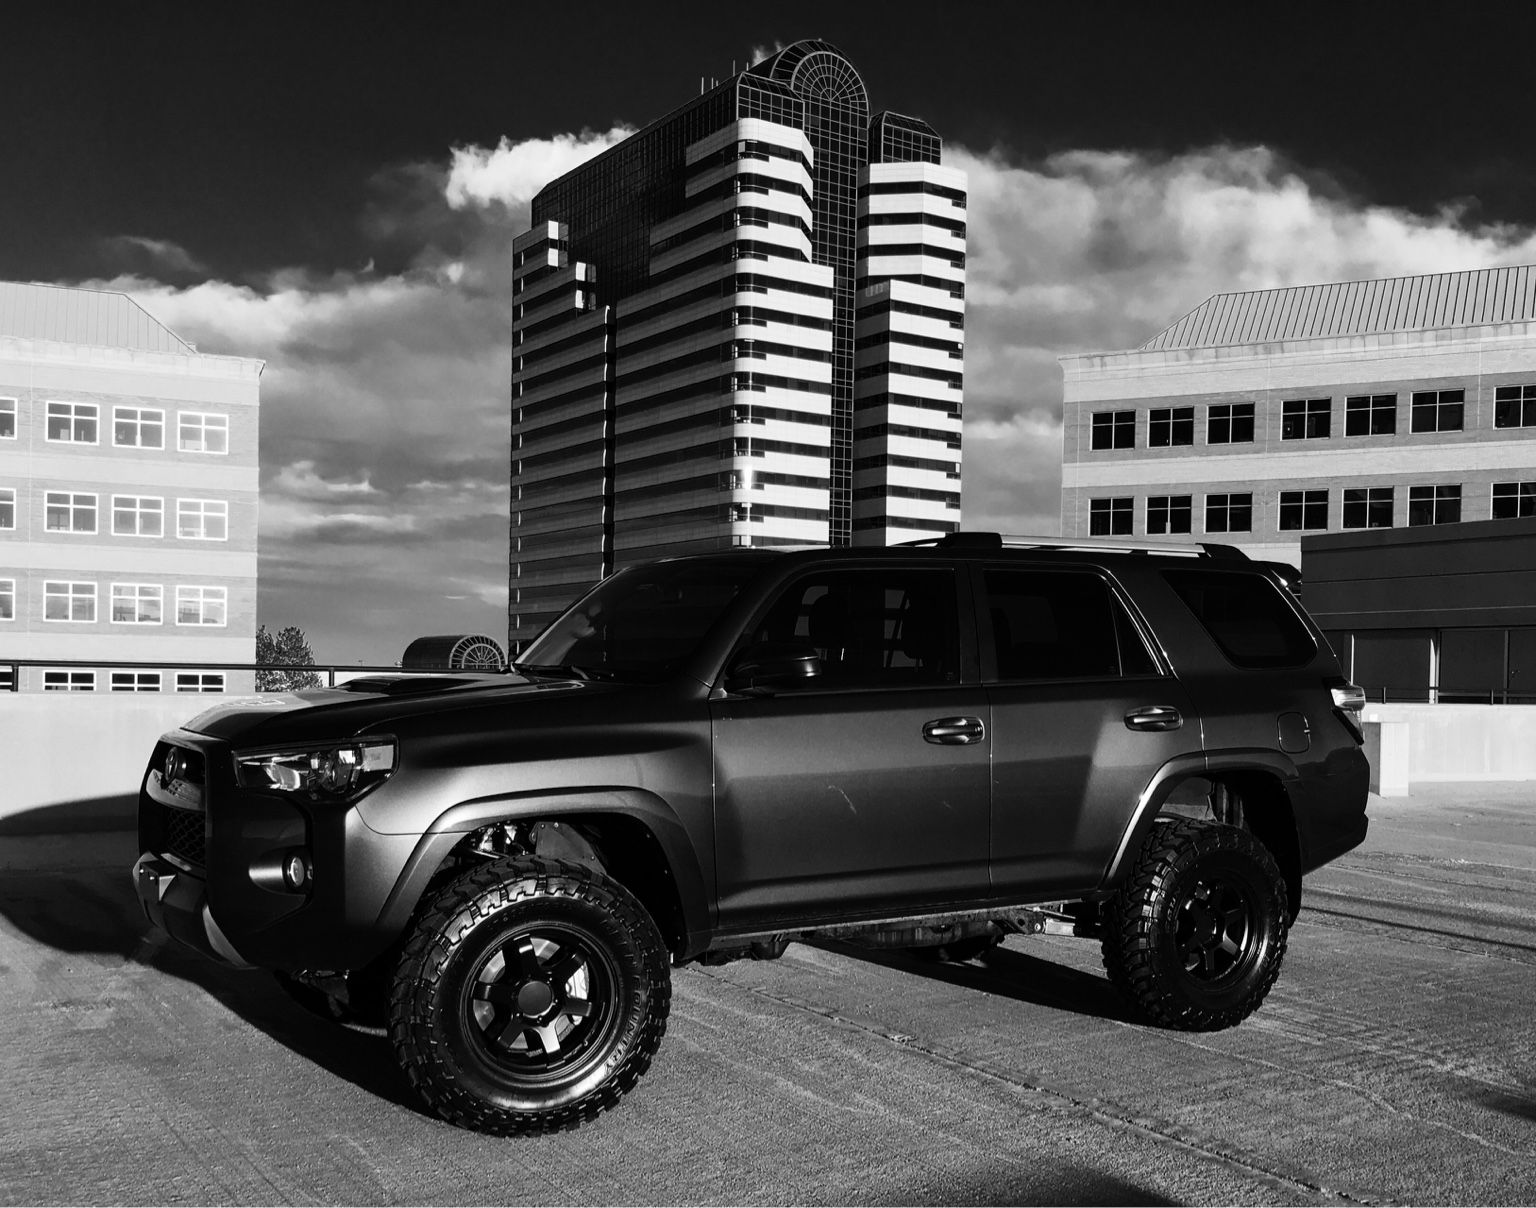 2017 4runner trd pro page 2 toyota 4runner forum largest 4runner - 5th Gen T4r Picture Gallery Page 356 Toyota 4runner Forum Largest 4runner Forum